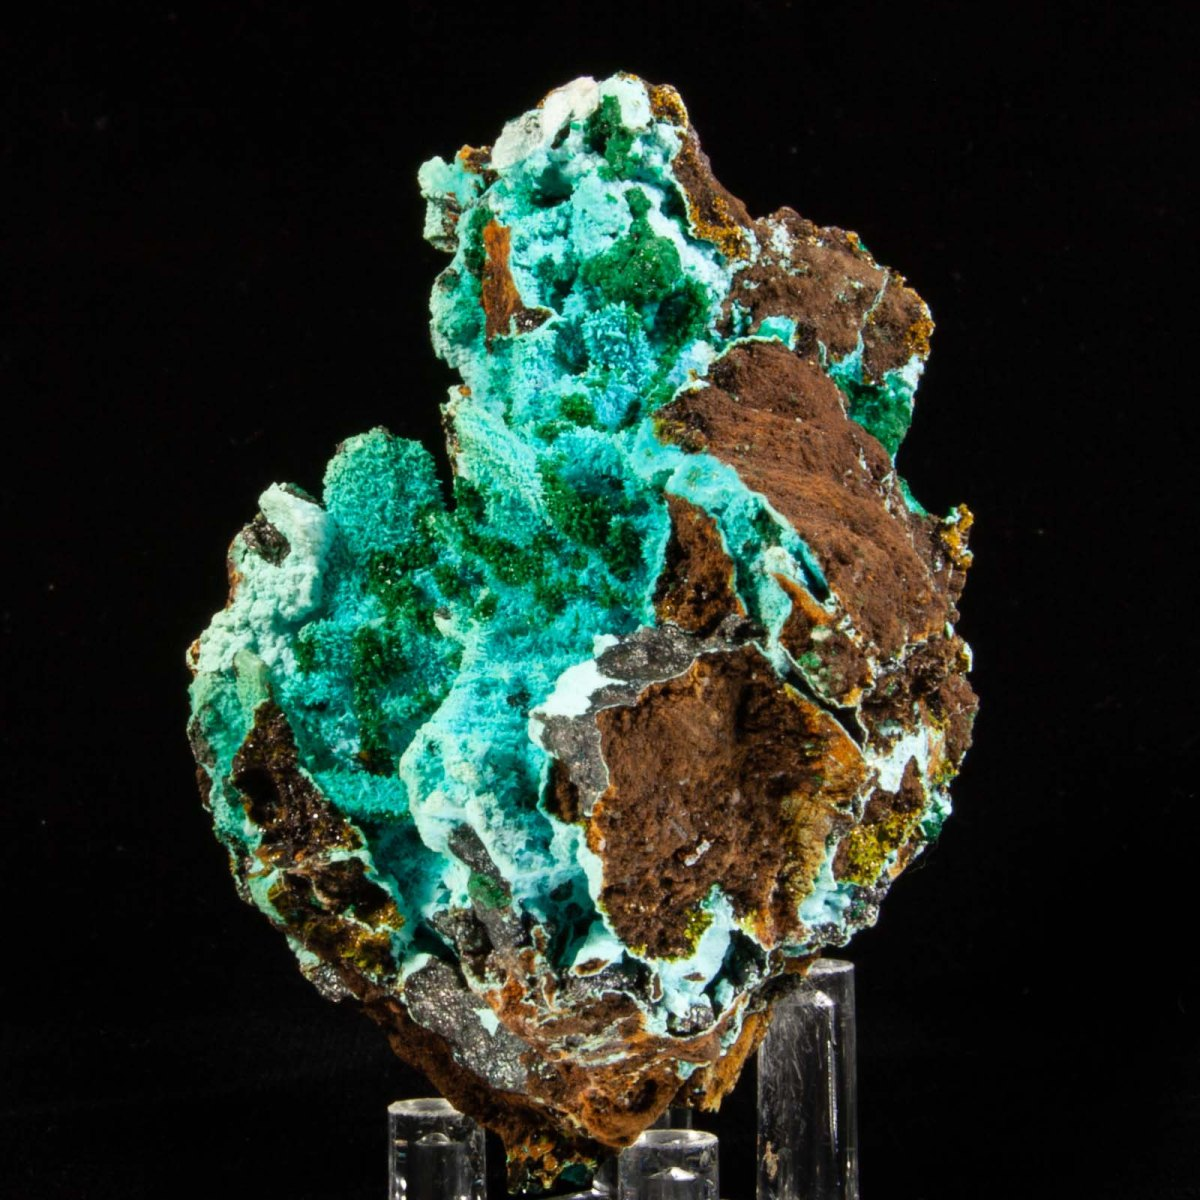 Chrysocolla ps. Malachite ps. Azurite